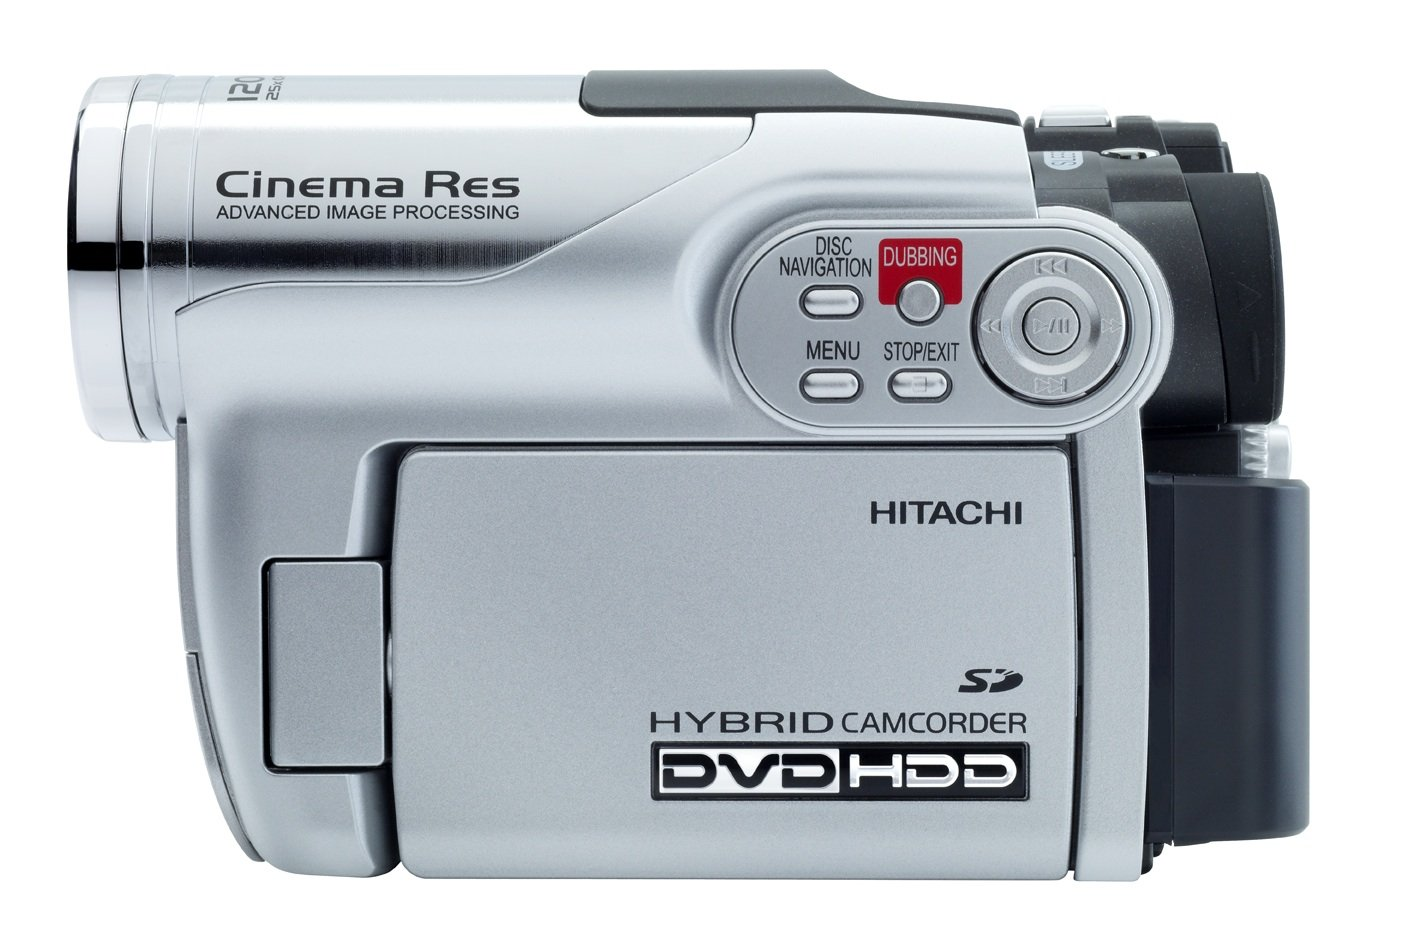 amazon com hitachi dzhs300a dvd hybrid camcorder with 25x optical rh amazon com Hitachi Hybrid Camcorder DZ-HS300A DVD Hitachi Hybrid Camcorder Software